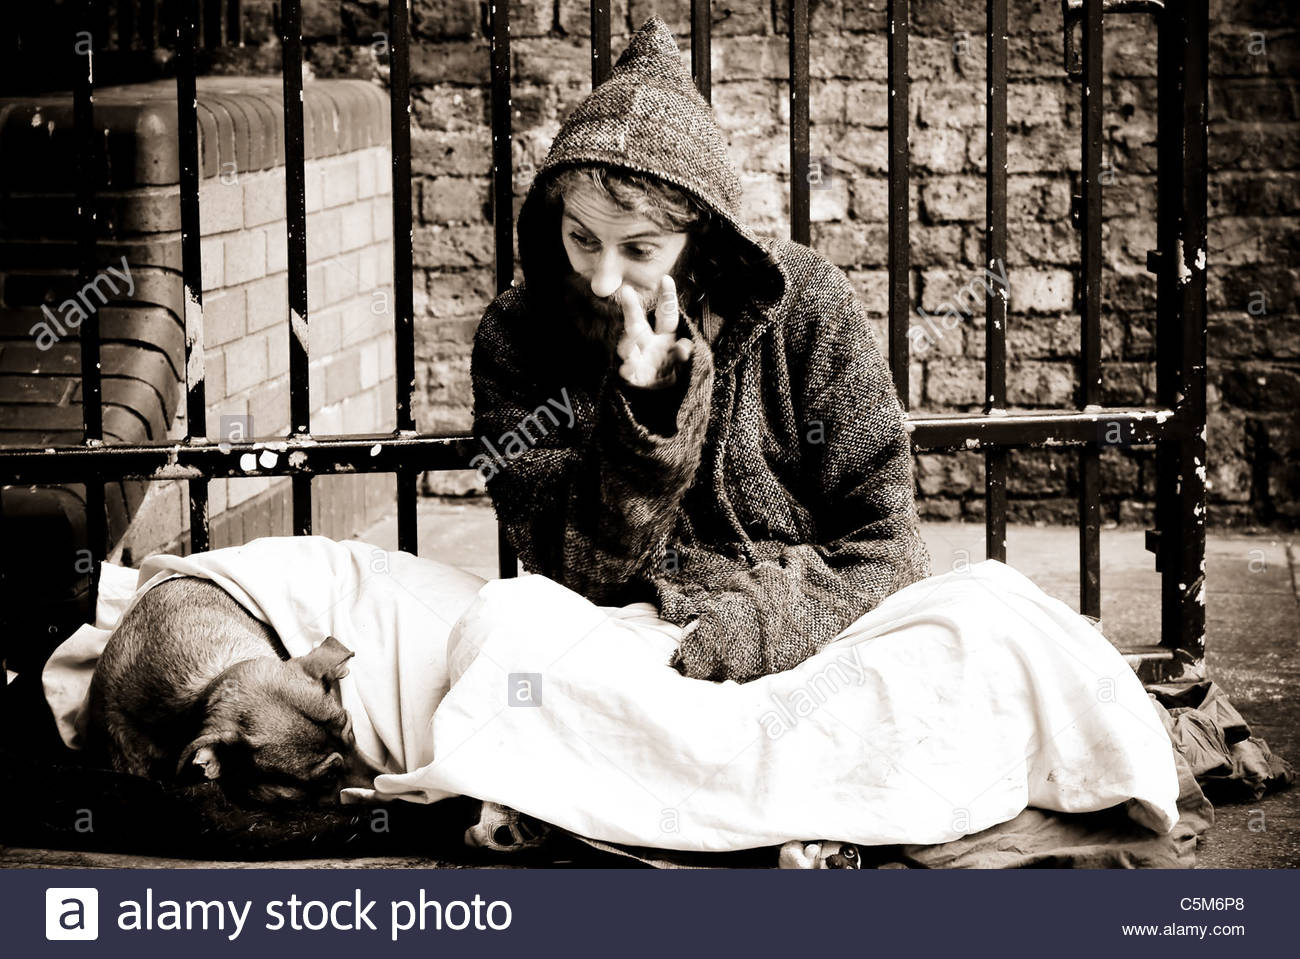 Homeless man with his dog sitting on the floor who became angry and aggressive during the portrait session - London Stock Photo